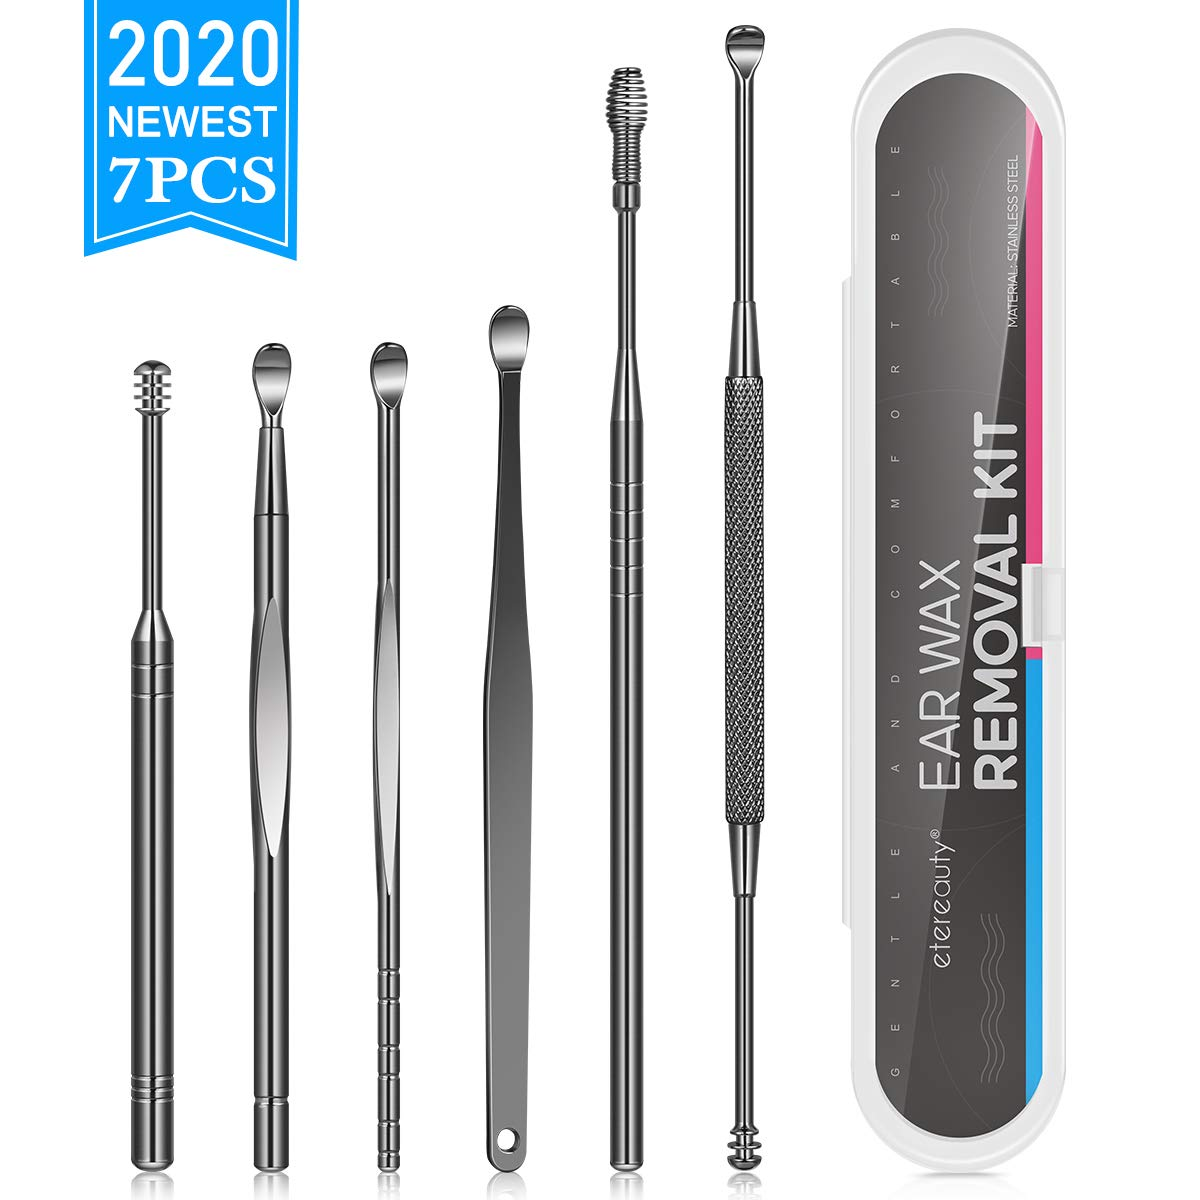 8-in-1 Ear Pick Tools Curette Cleaner Reusable Ear Cleaner Ear Wax Removal Kit